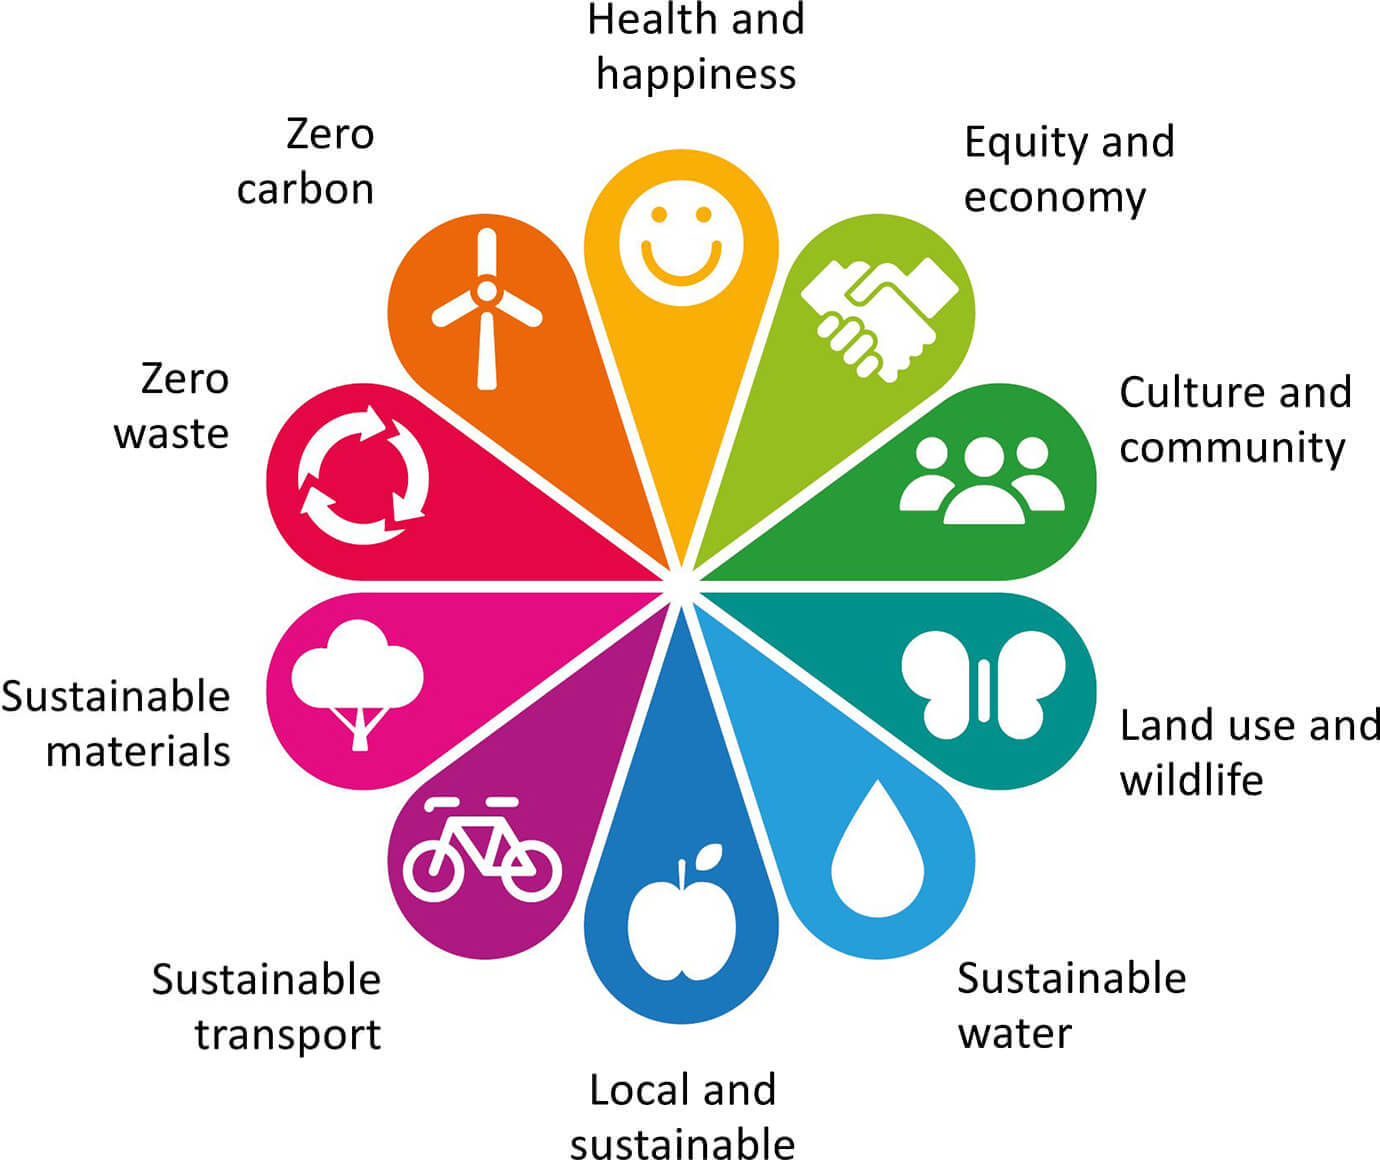 Health & happiness; equity and economy; culture and community; land use and wildlife; sustainable water; local and sustainable; sustainable materials; sustainable transport; zero waste; and zero carbon